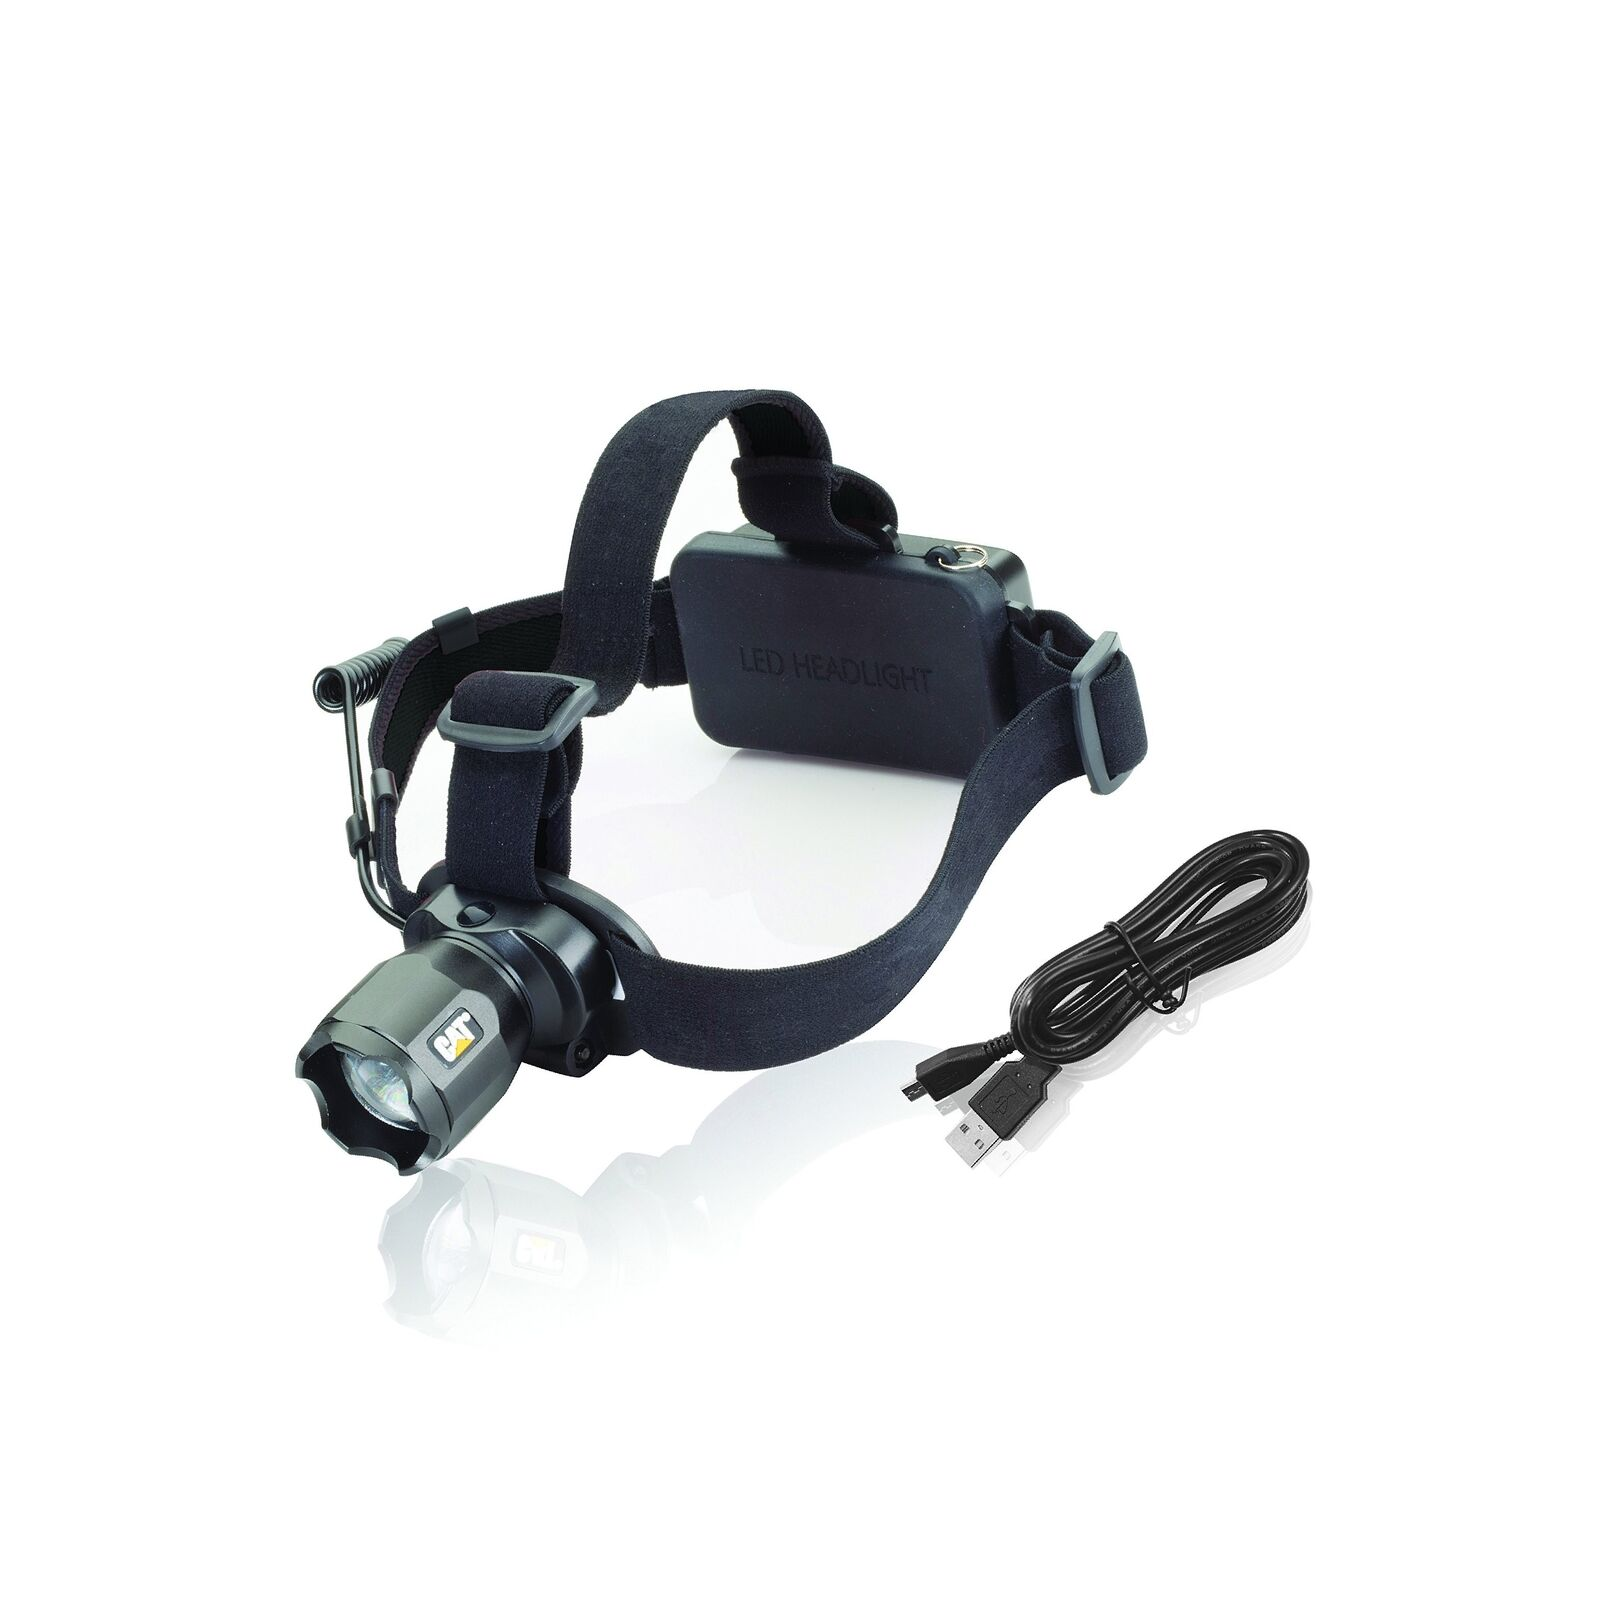 Cat  CT4205  380 Lumen Rechargeable CREE LED Focusing Headlamp with Adjust... New  free shipping!